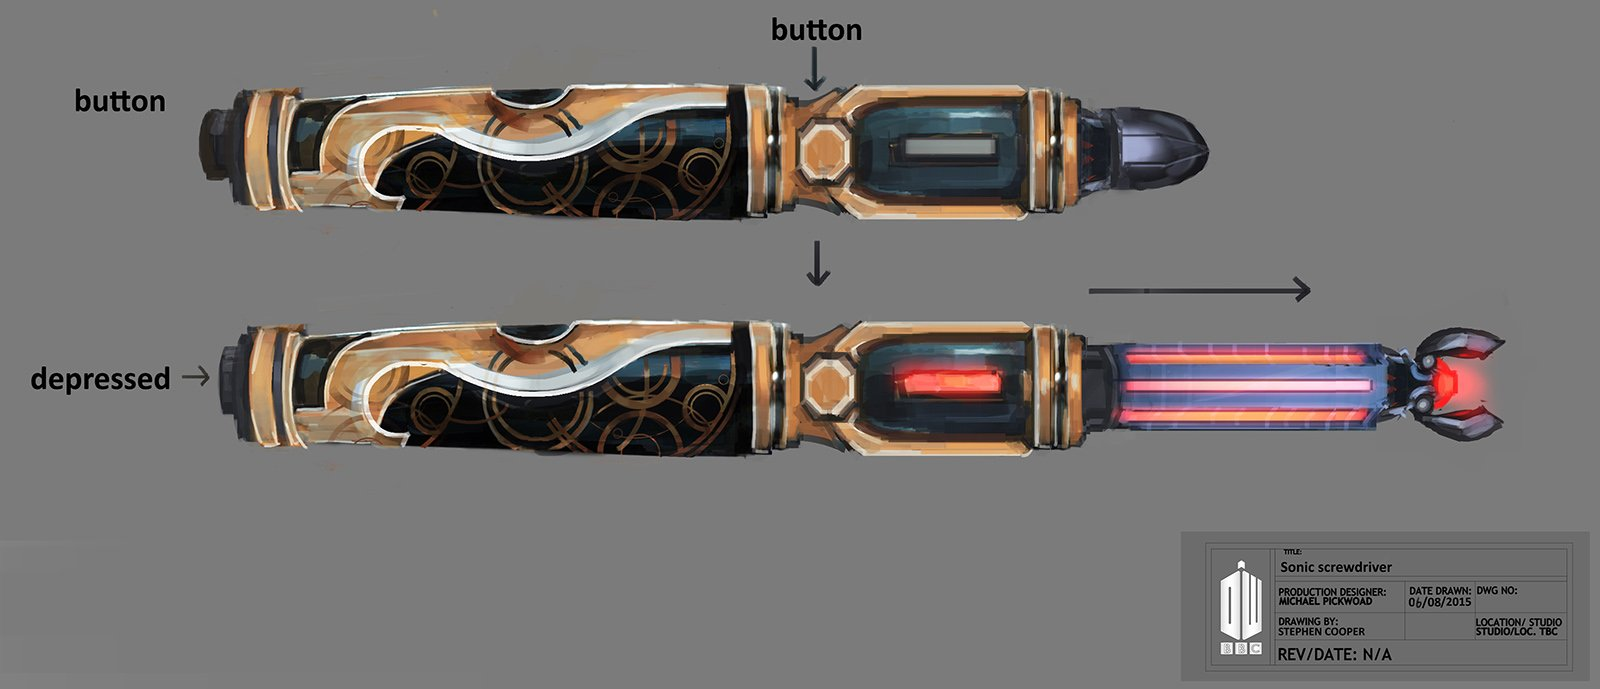 Doctor Who Series 9, 12th Sonic Screwdriver, concept development